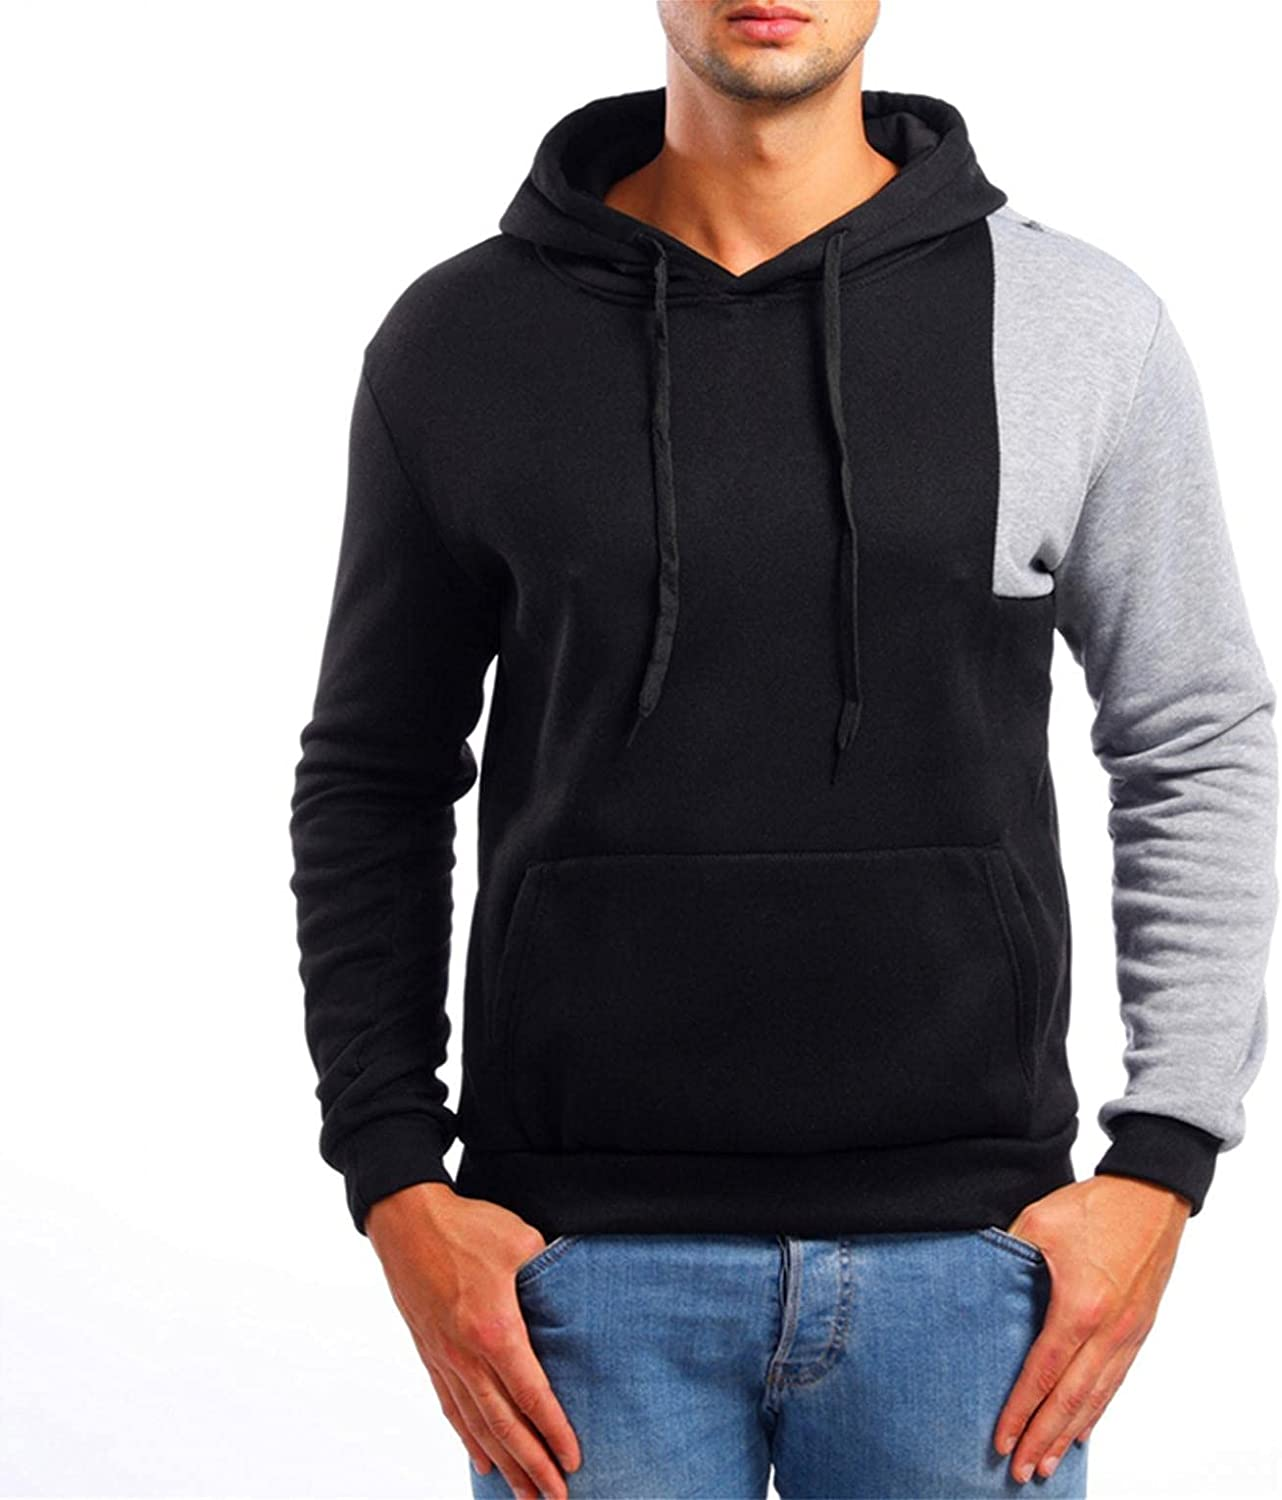 Men's Hooded Sweatshirts Lightweight Fashion Slim Fit Casual Pullover Hoodie Shirts Long Sleeve Sport Tops